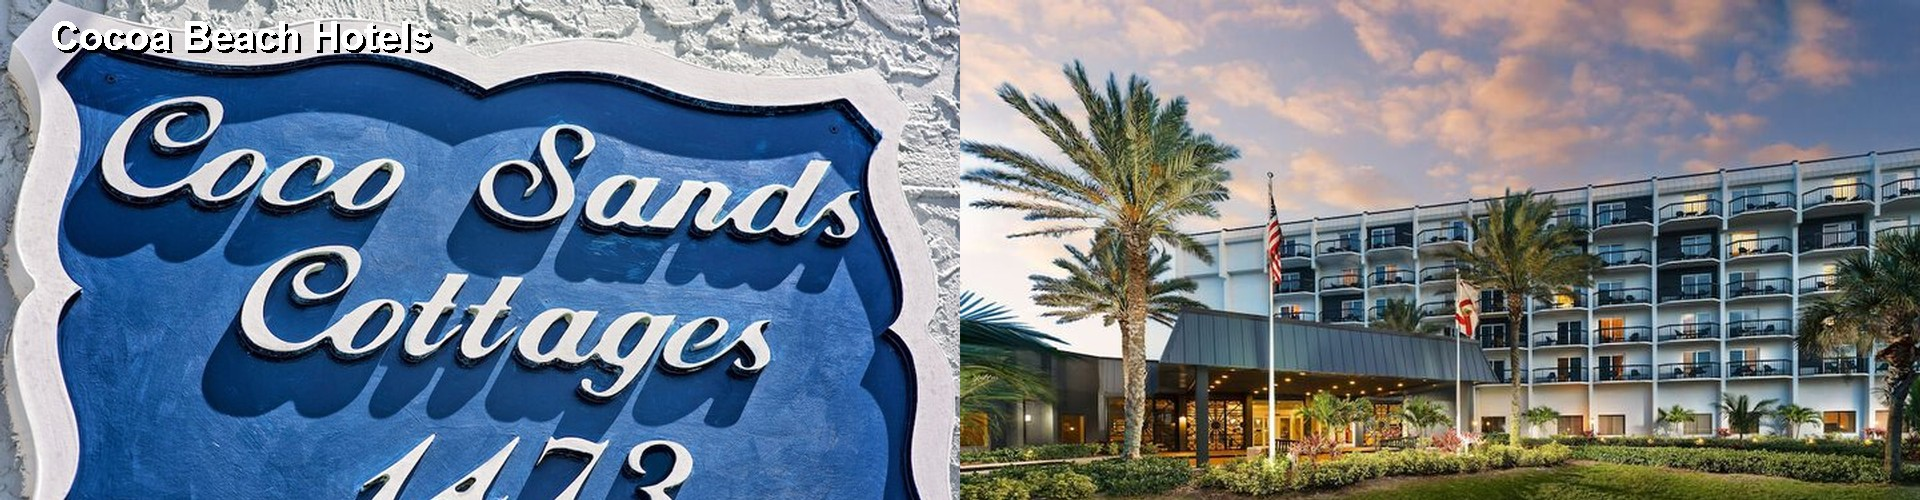 5 Best Hotels near Cocoa Beach